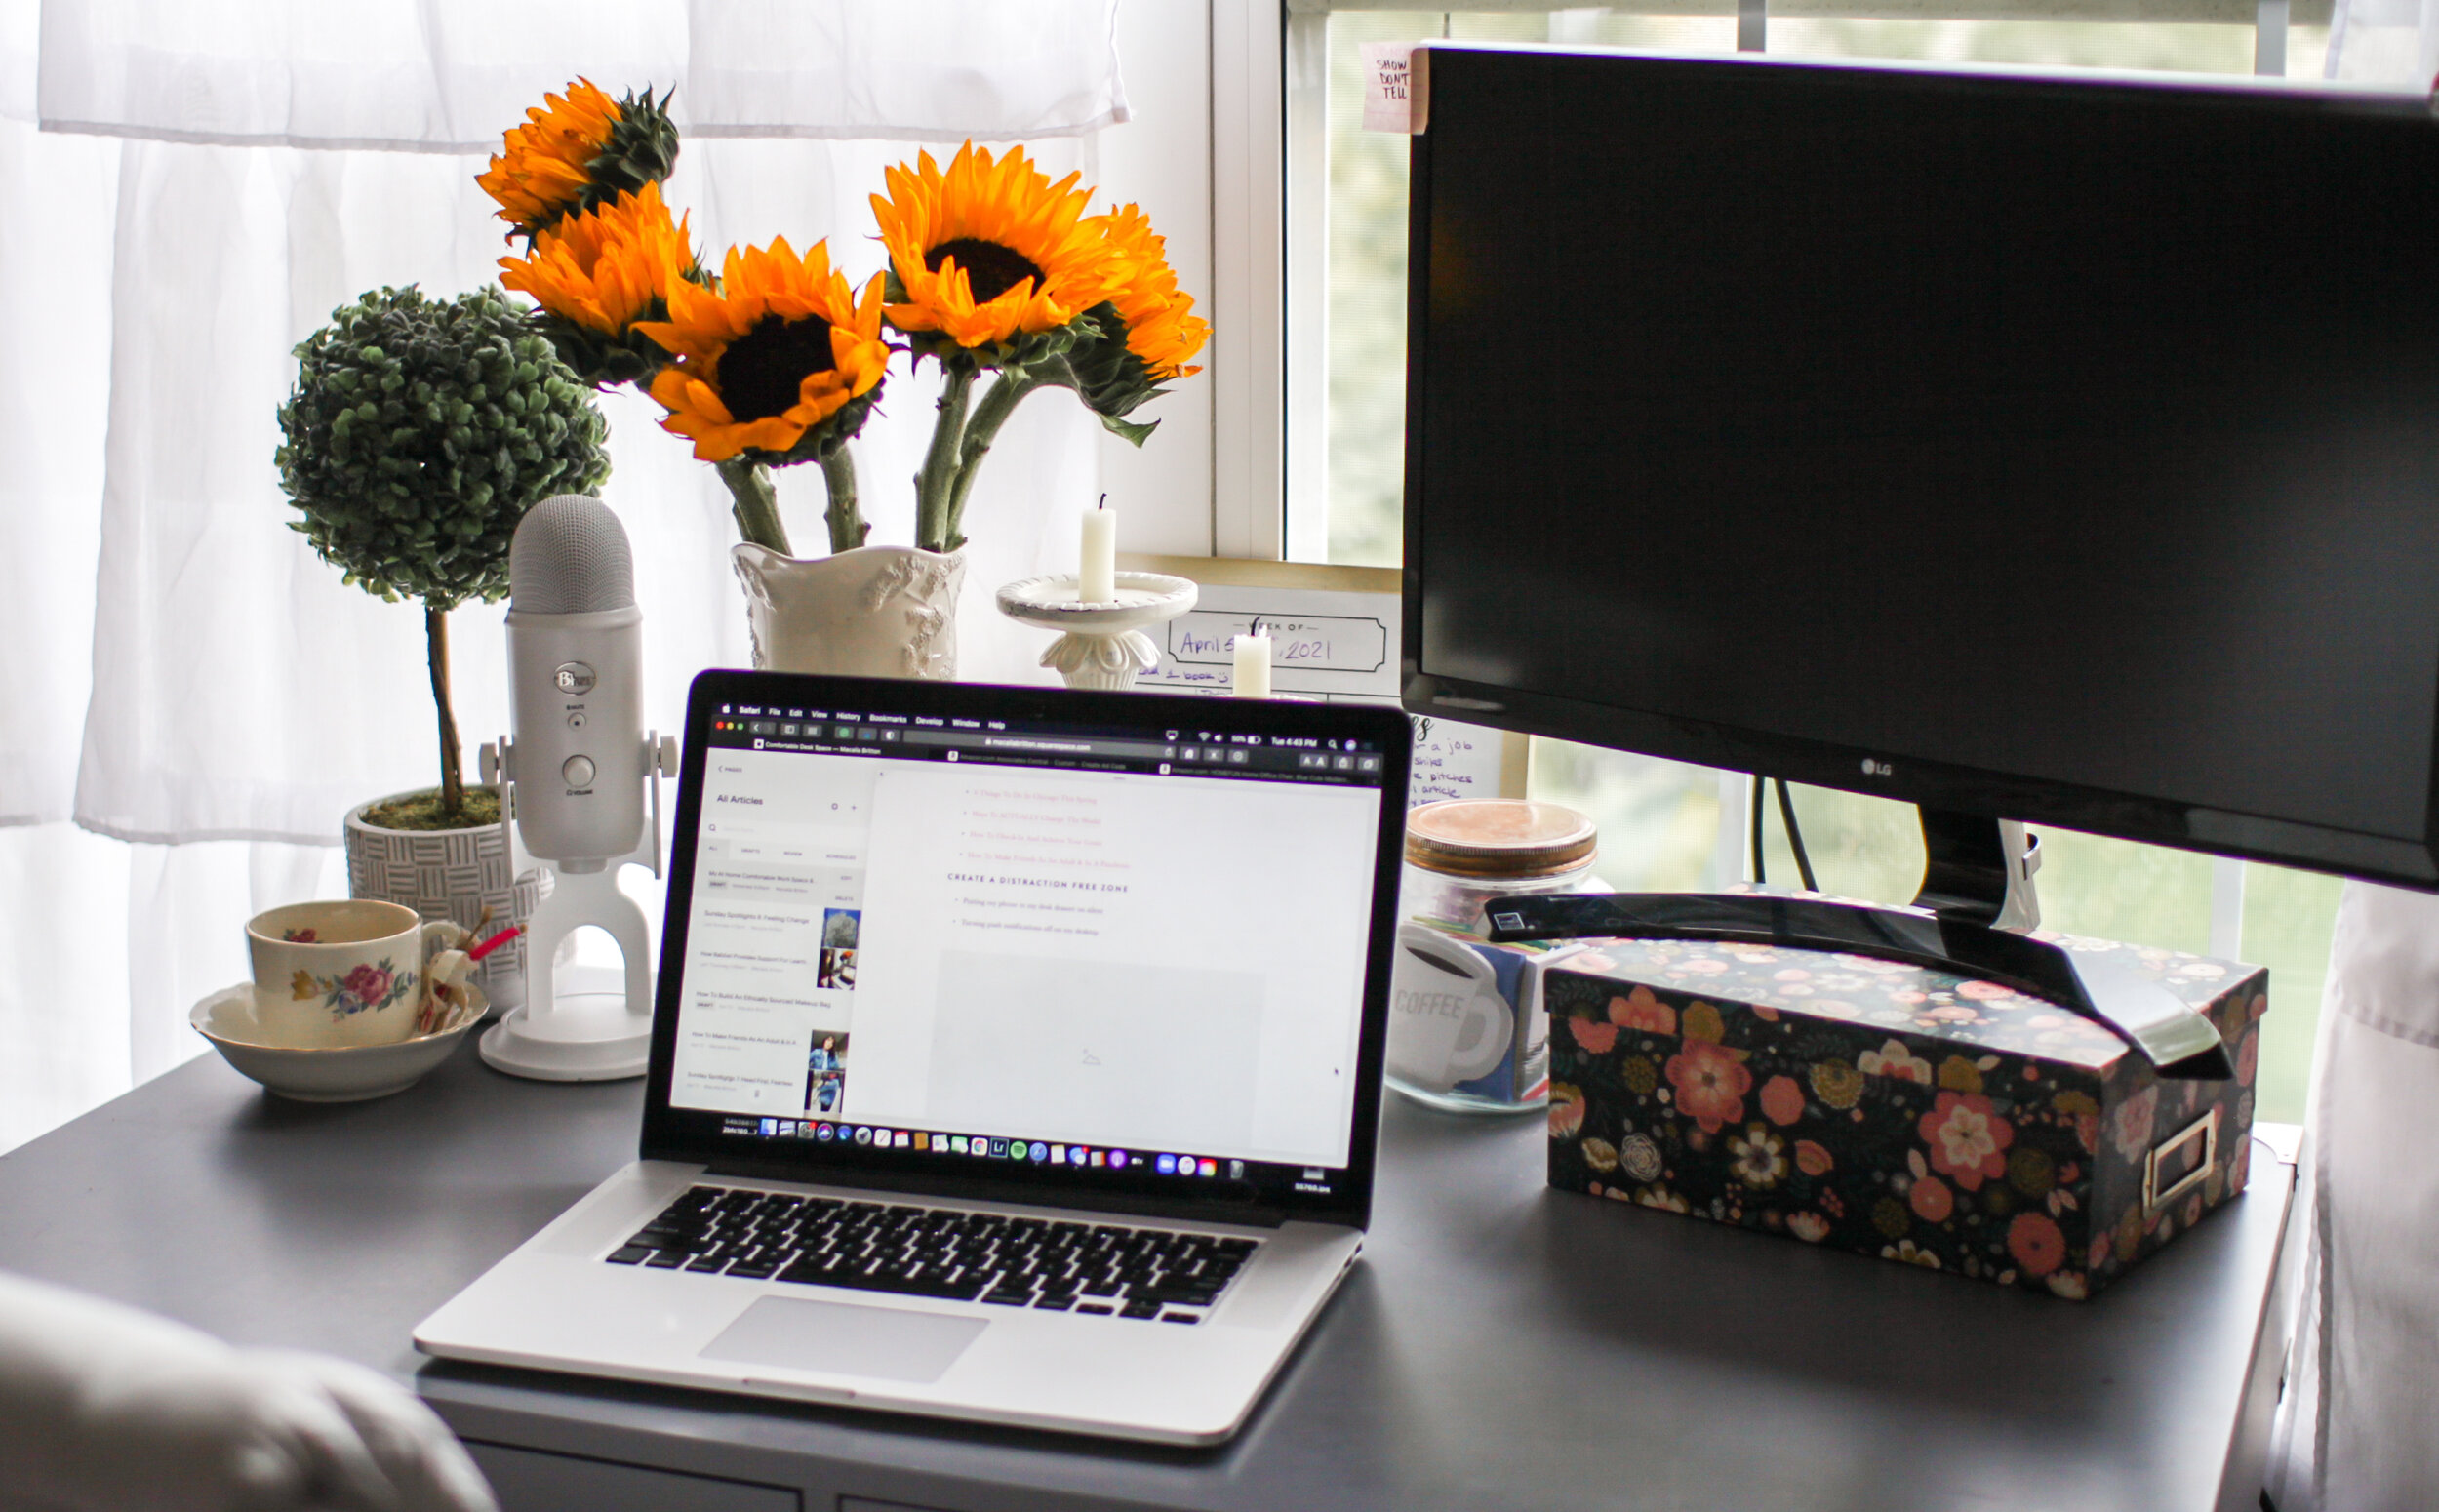 A blogger's work from home office and desk setup